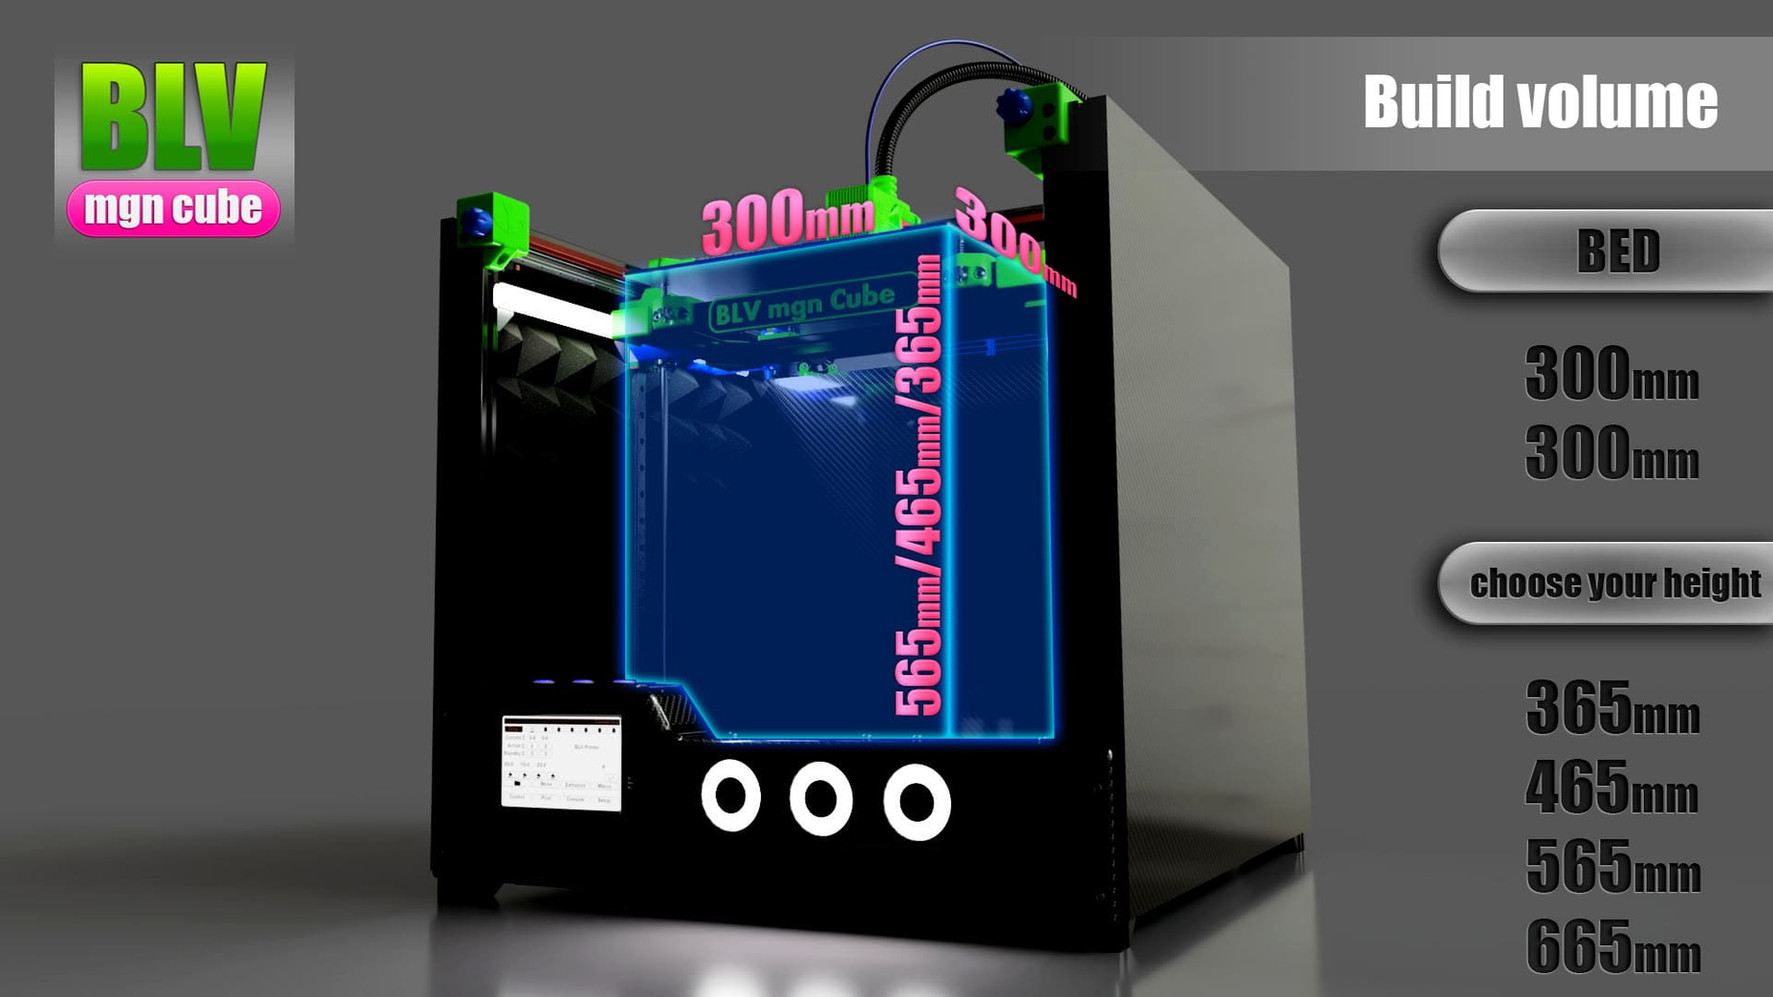 blv mgn cube by ben levi - build volume.